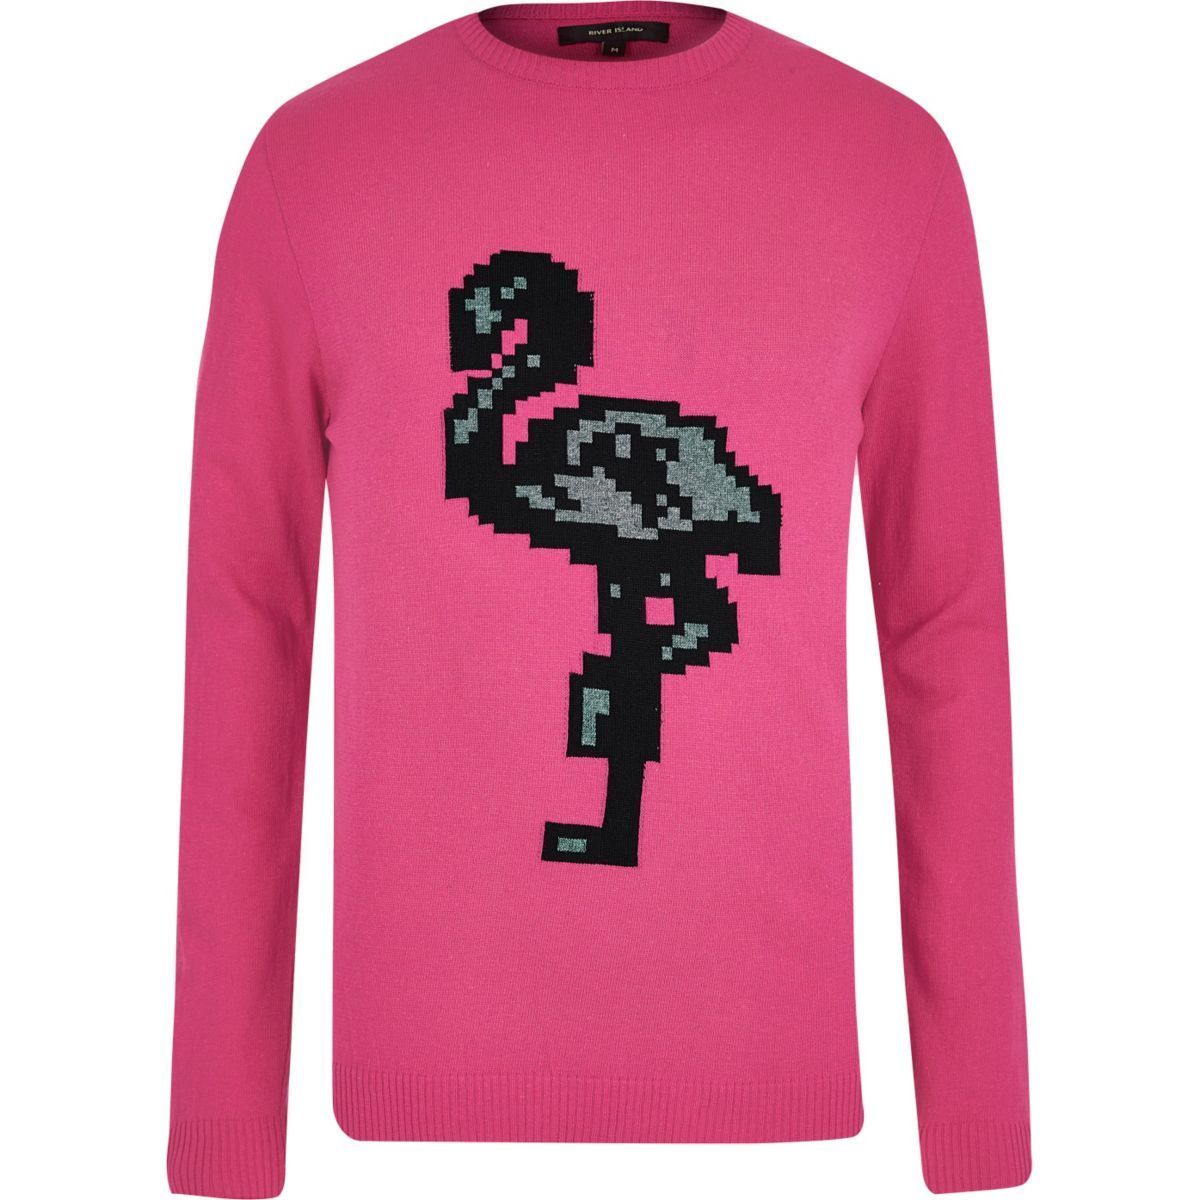 Bright pink flamingo print jumper